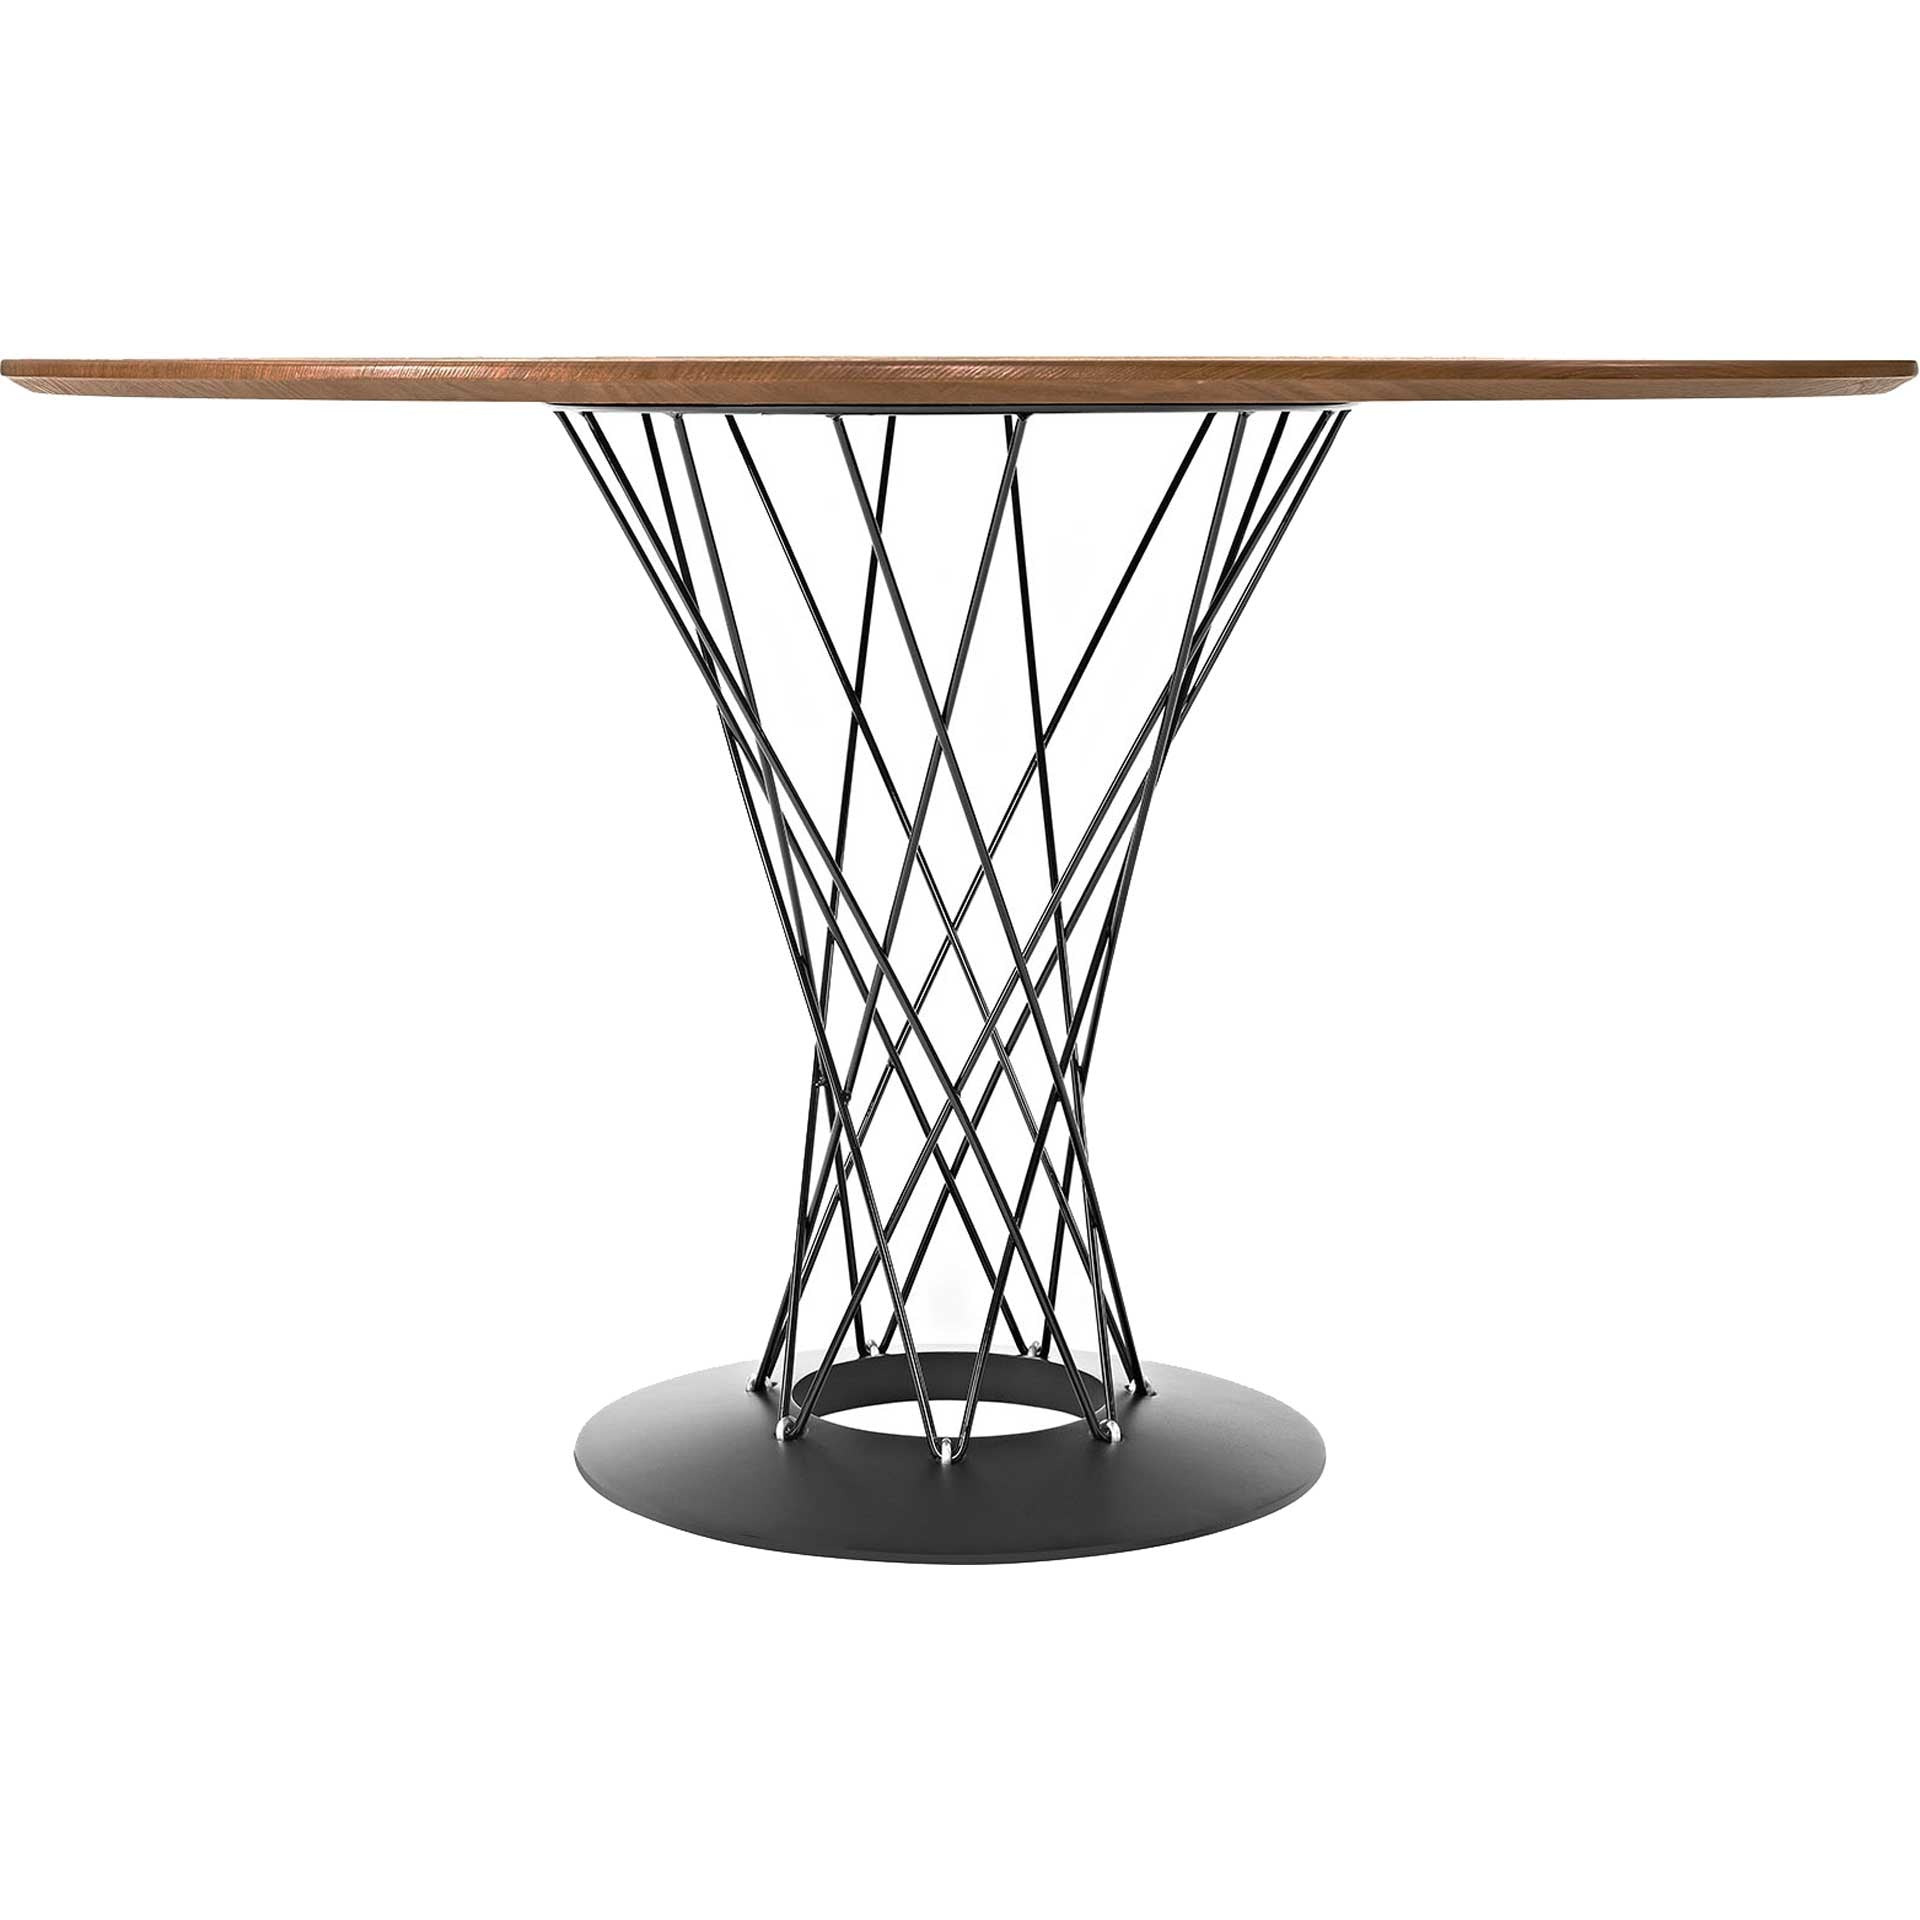 Cycle Stainless Steel Dining Table Walnut